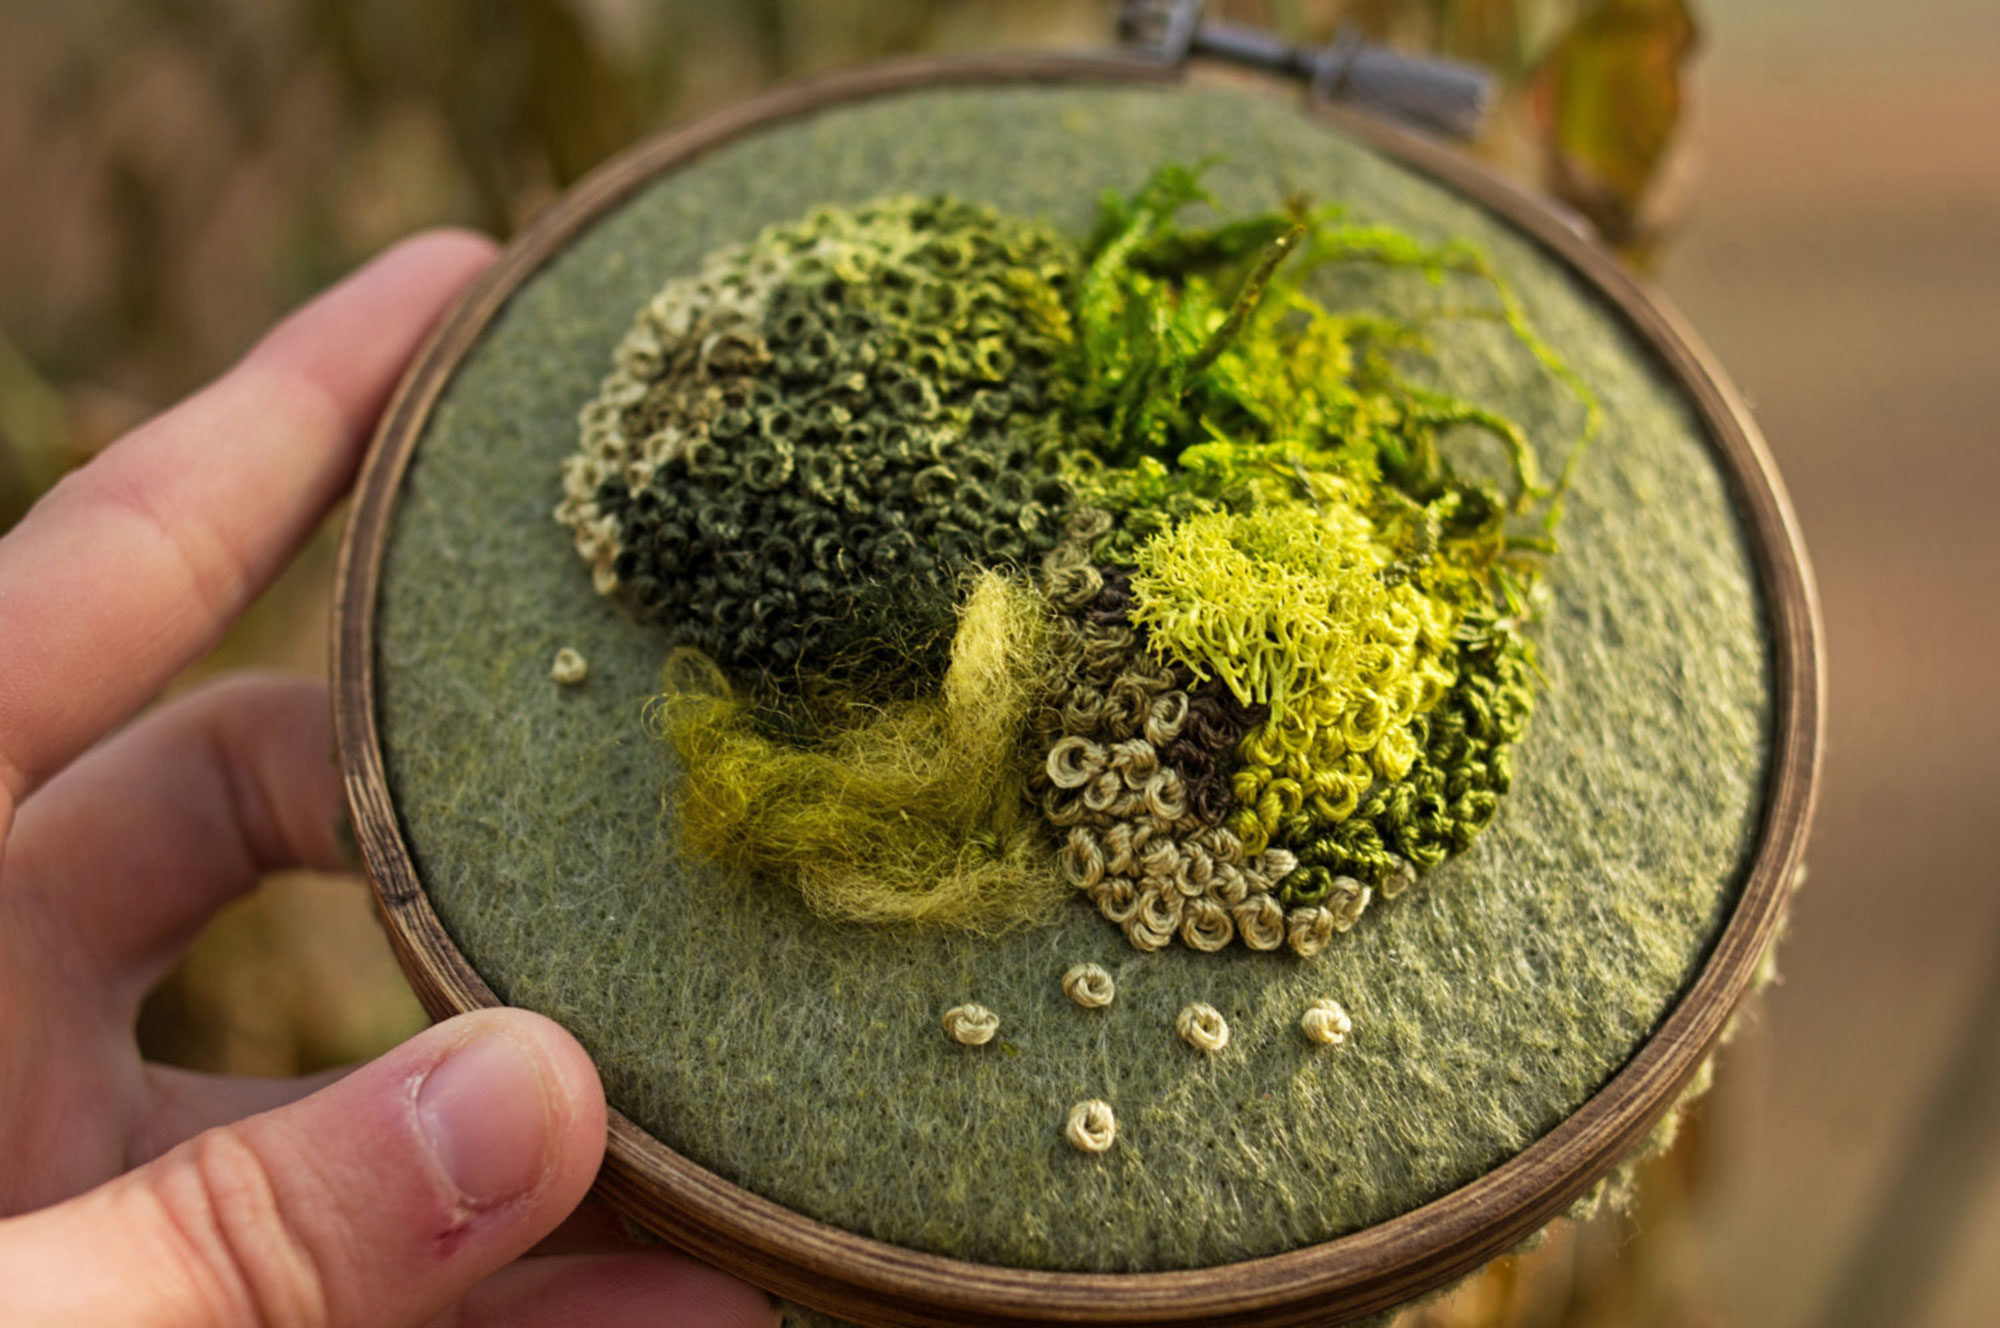 Intricate Moss Embroideries Ease Anxiety with Piled Stitches